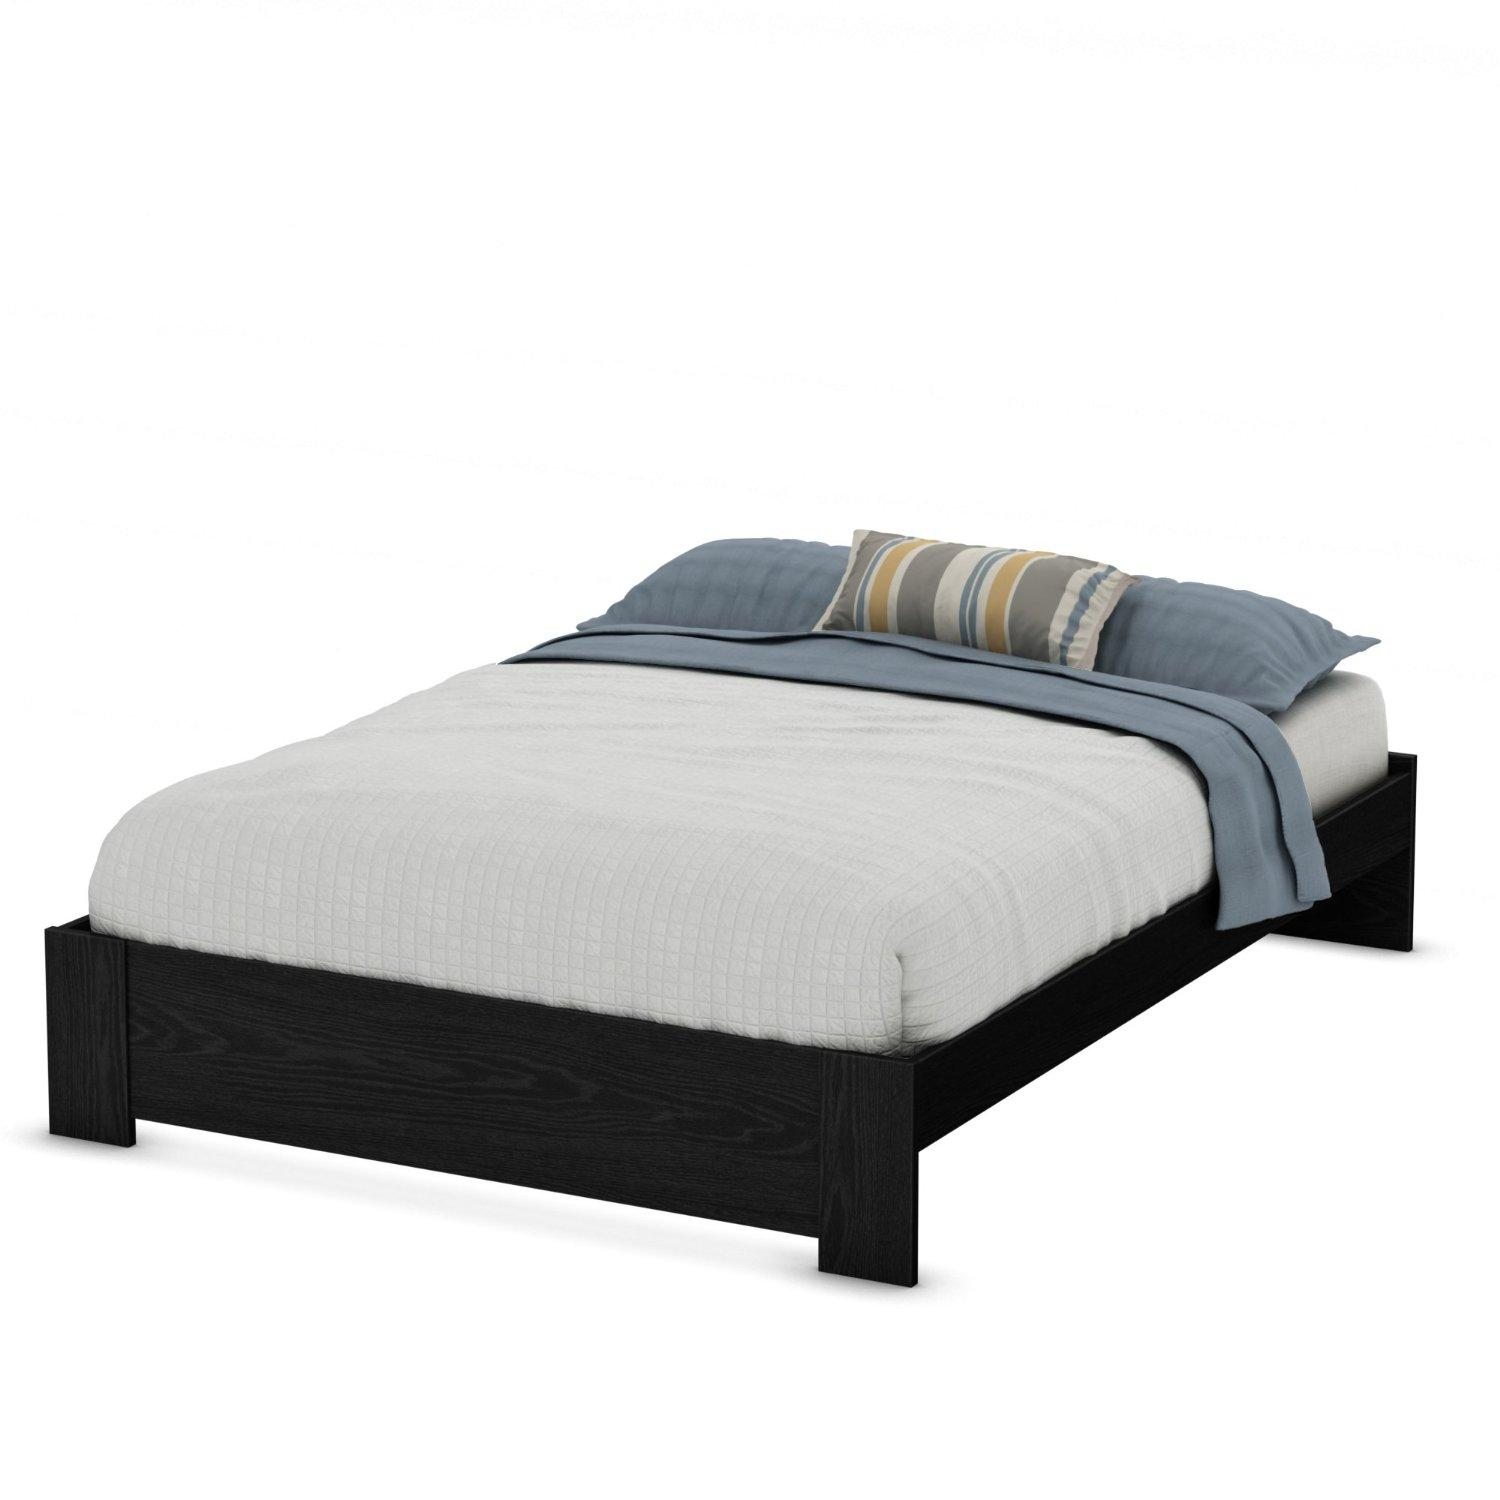 "South Shore Queen Platform Bed 60"" by OJ merce"